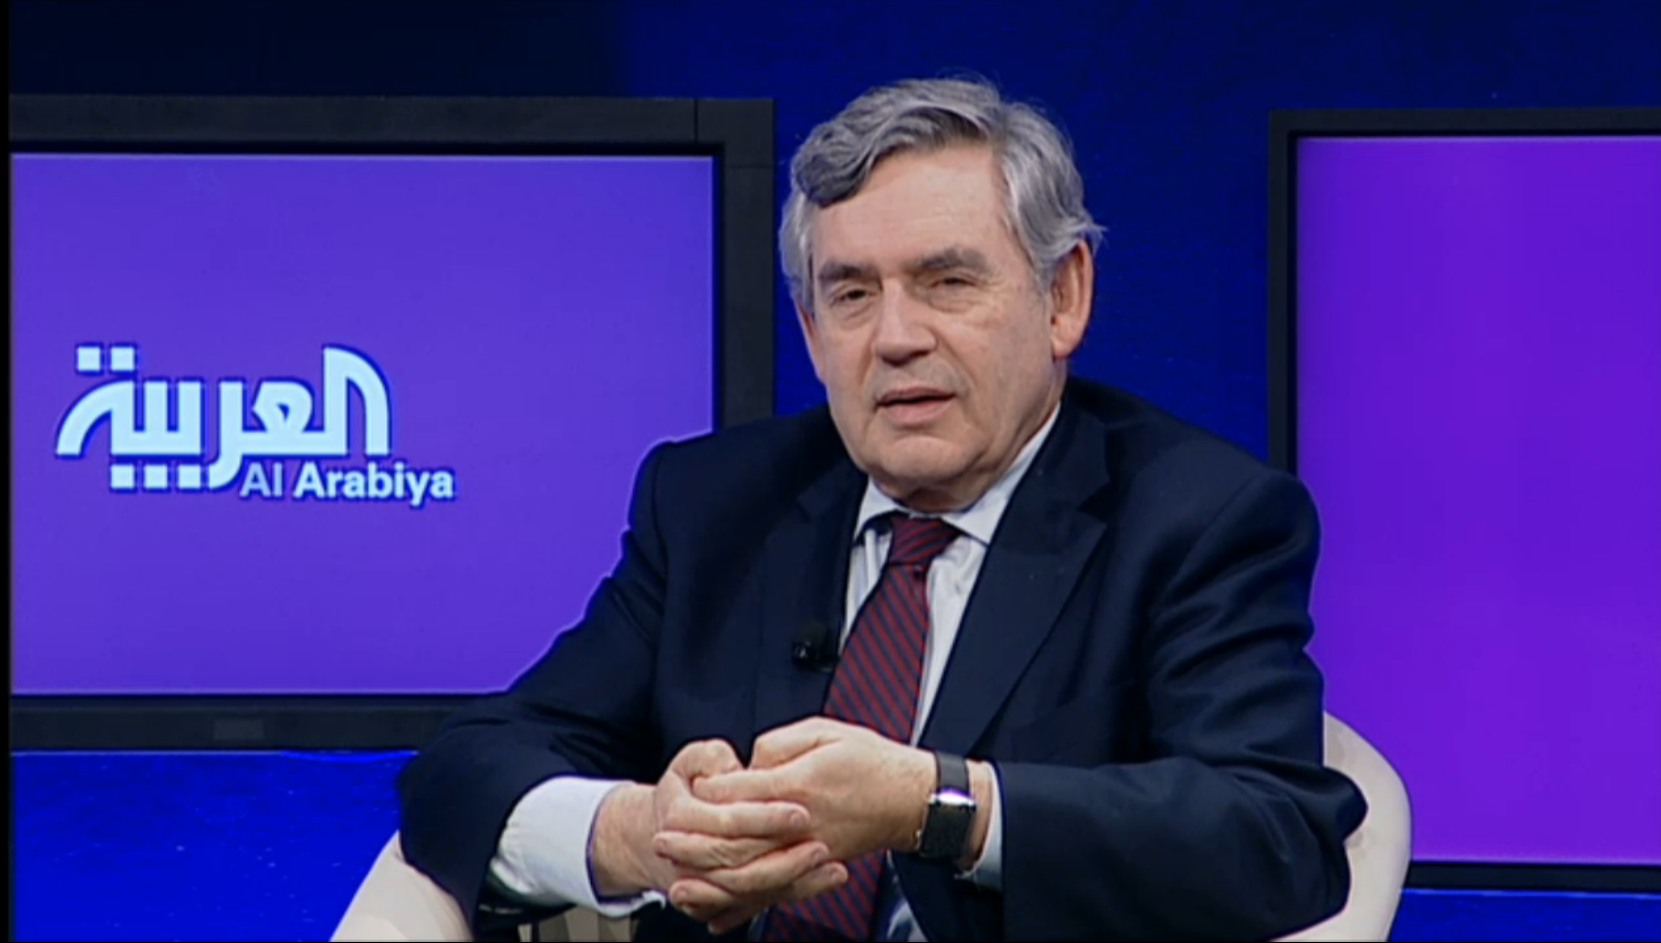 Former UK Prime Minster Gordon Brown at the Al Arabiya News Channel panel discussion. (Photo courtesy: WEF)